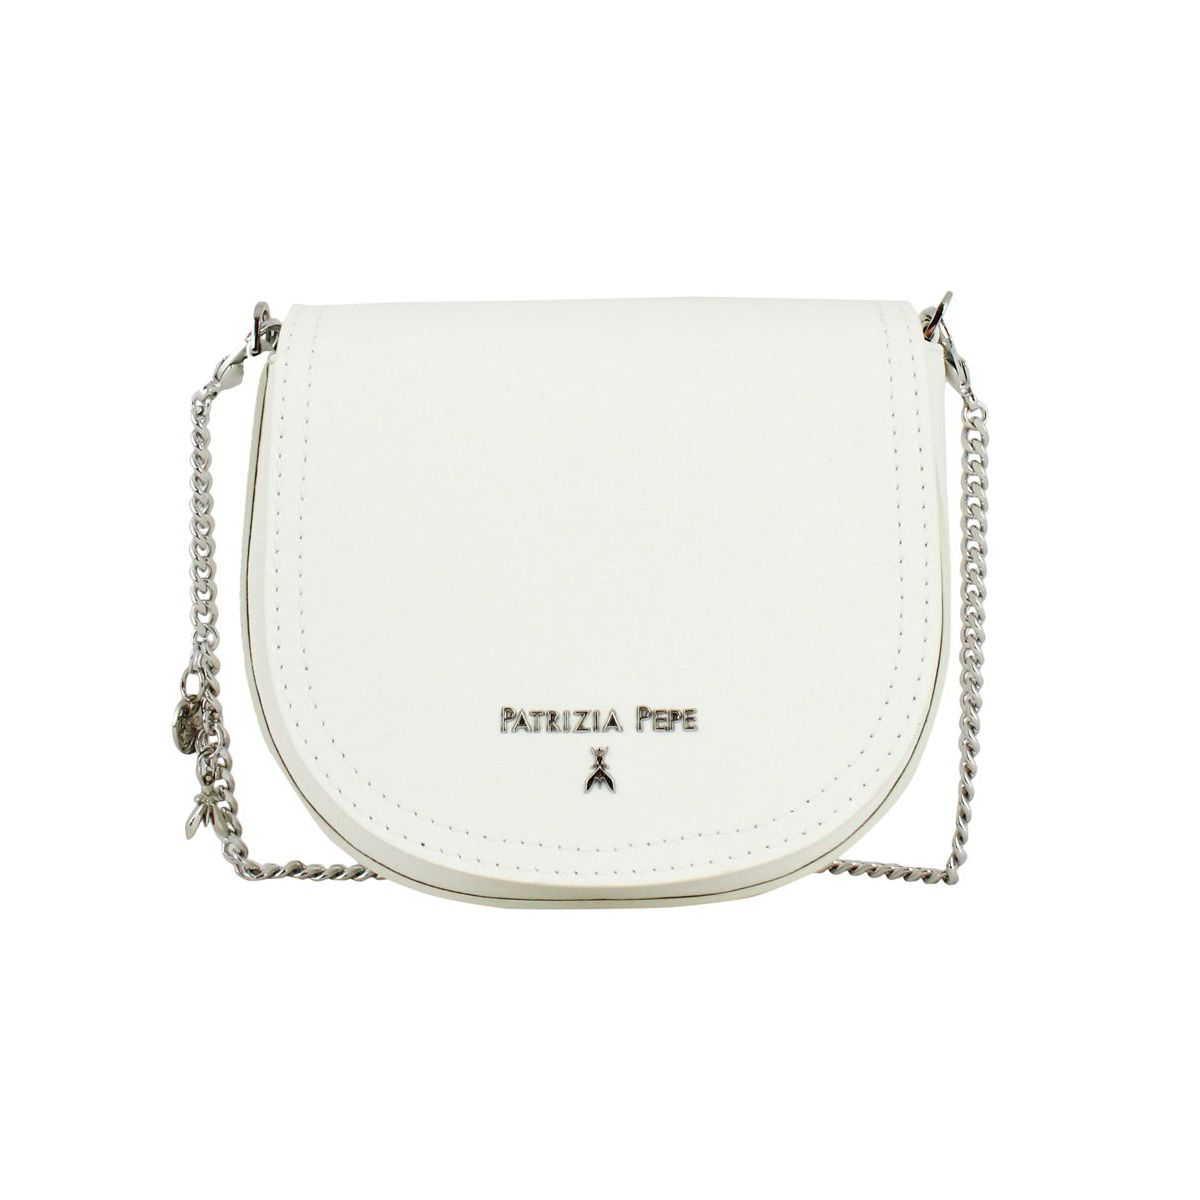 8f466432a4 Shoulder bag in leather with logo White, Patrizia Pepe 2v8752 at79 ...